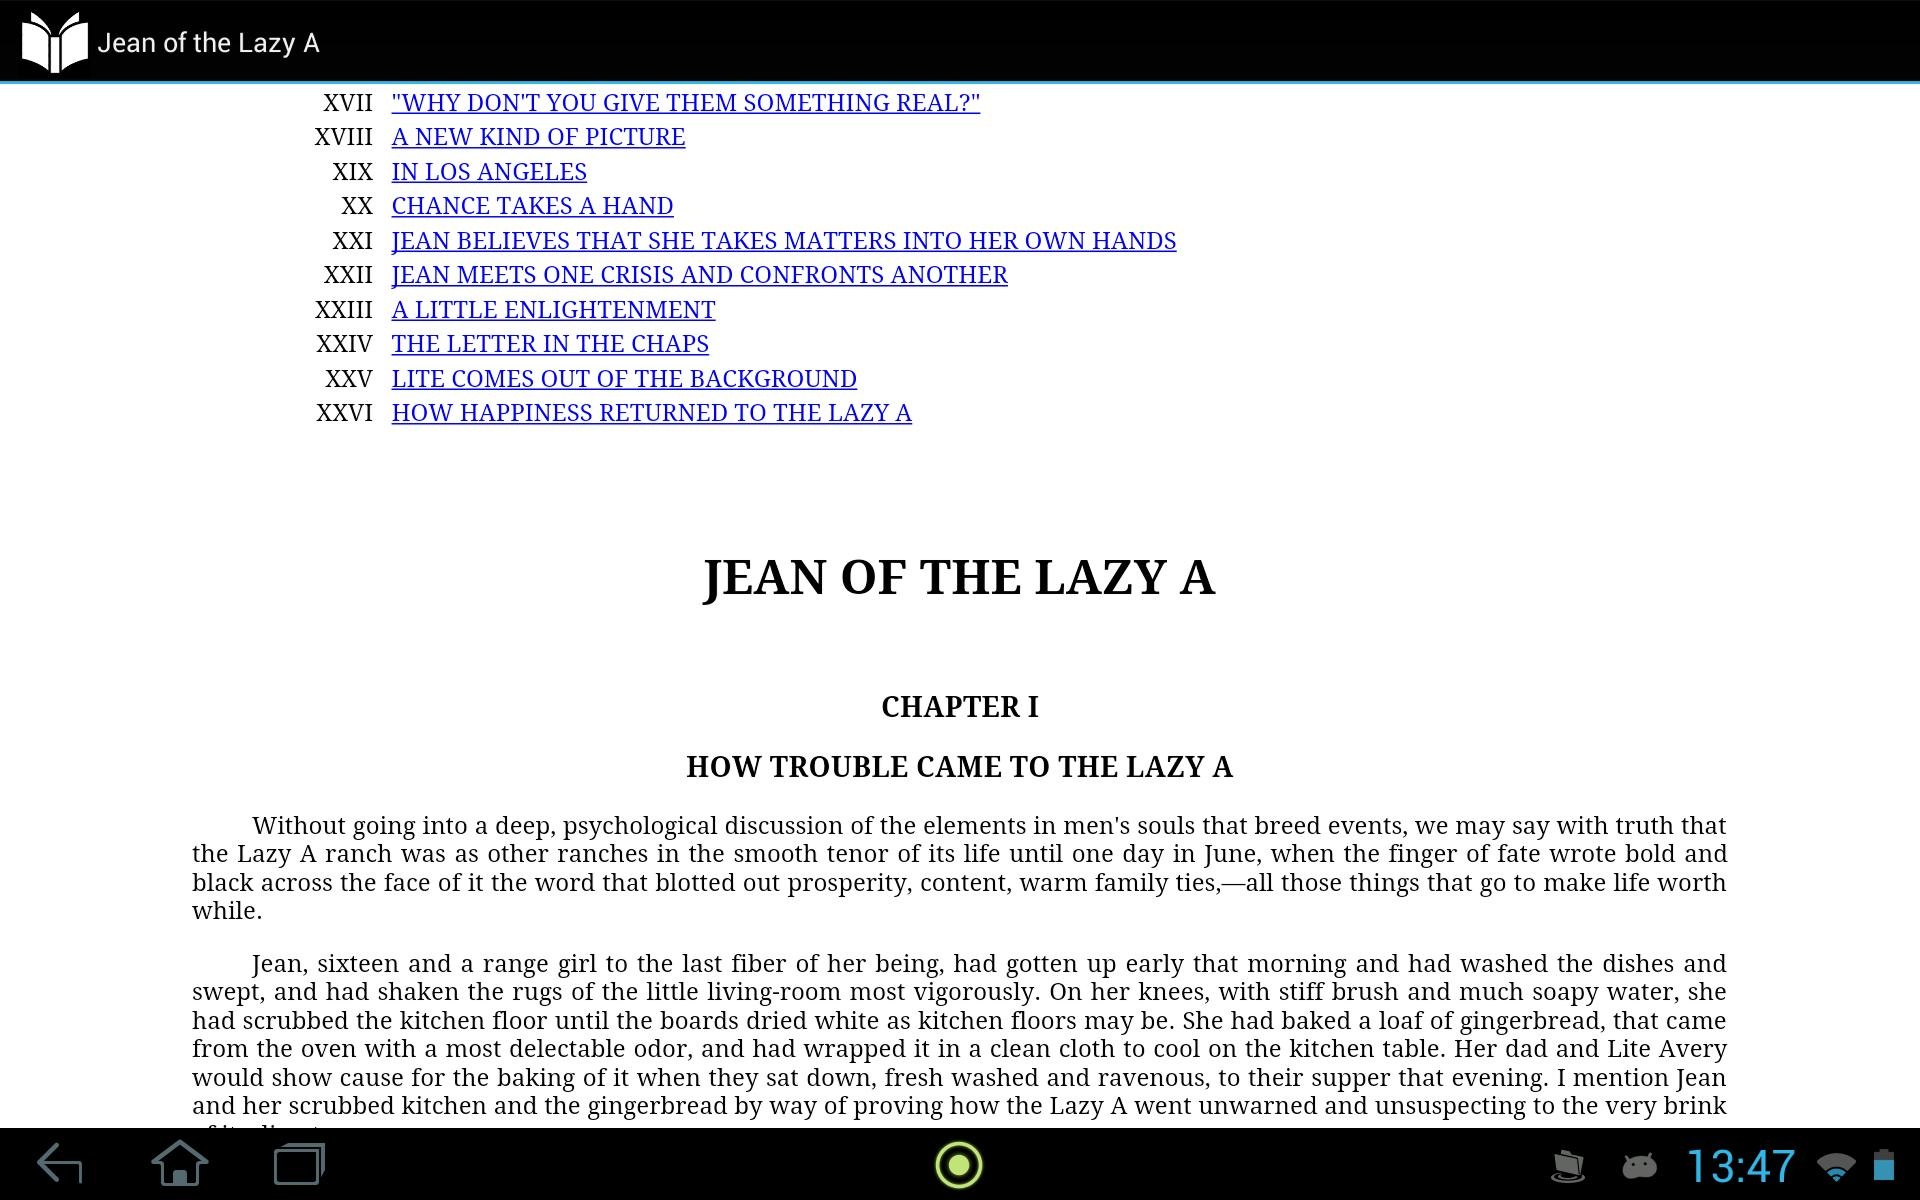 Jean of the Lazy A poster